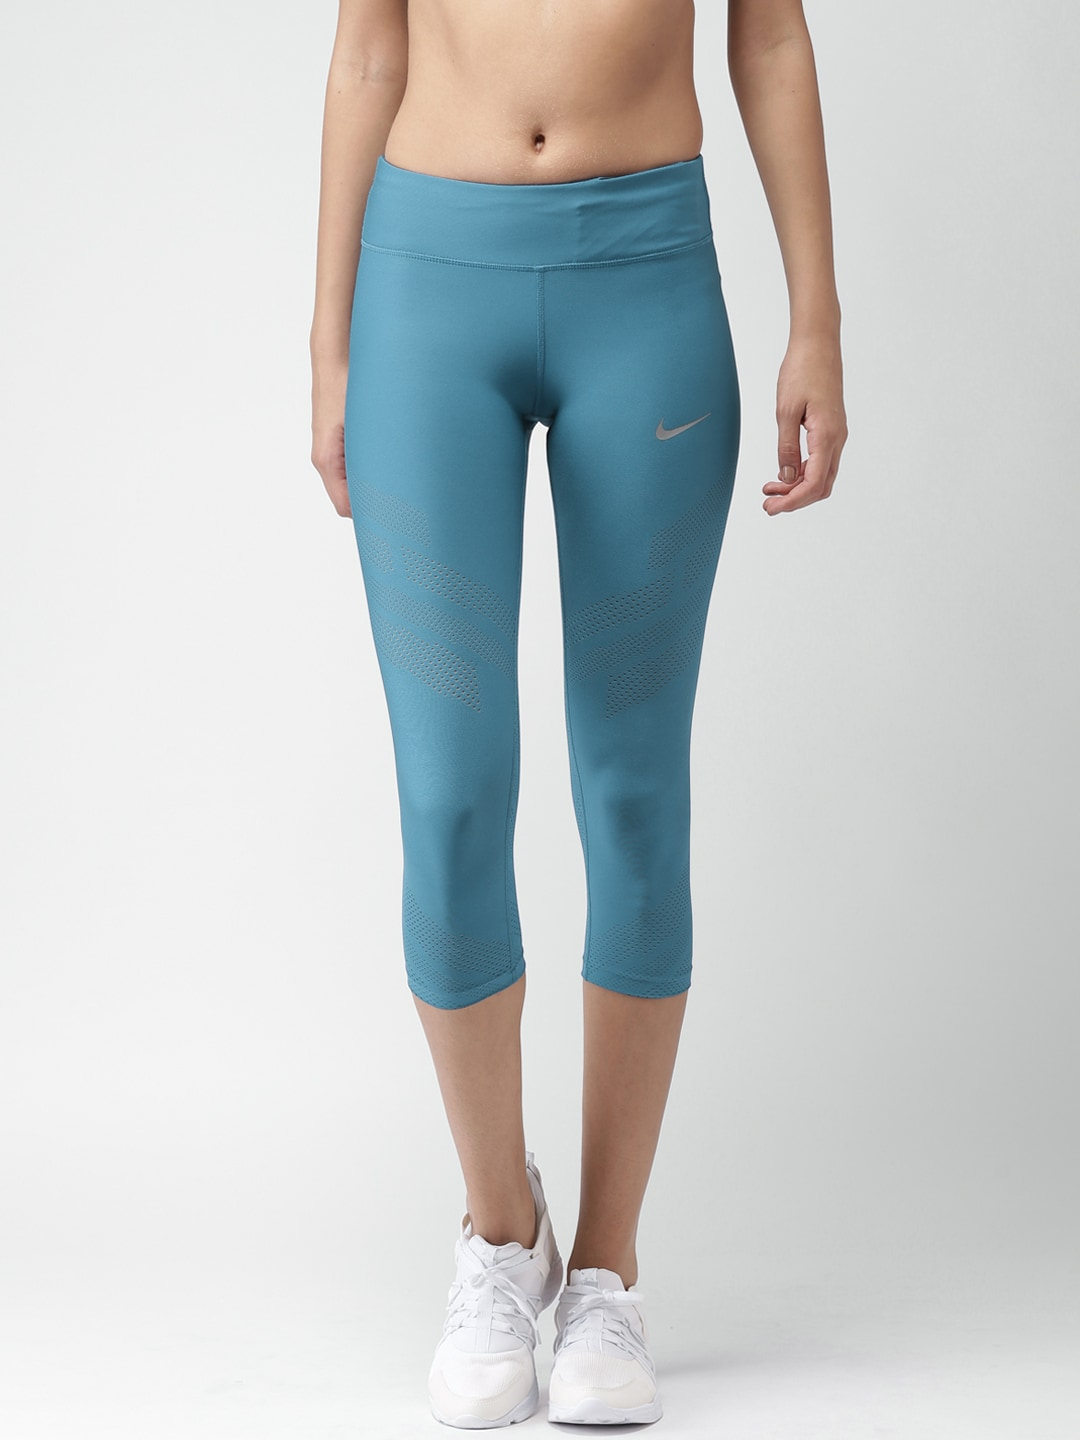 Nike Women Teal Blue CROP EPIC COOL Tight Fit Capris image